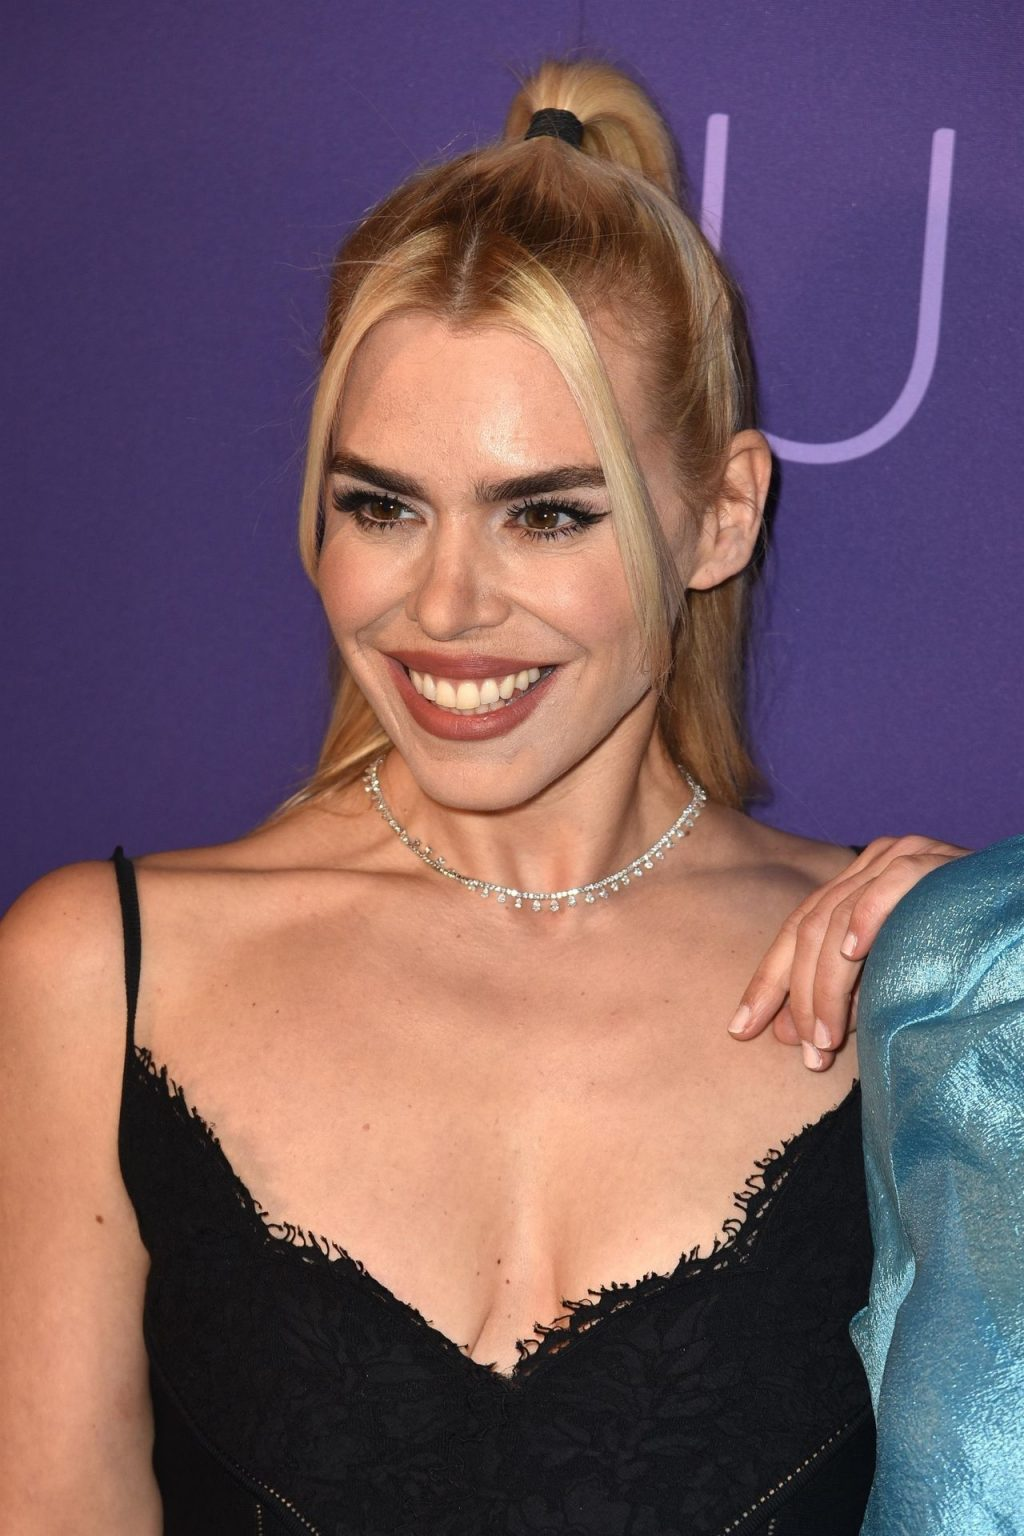 Billie Piper Sexy The Fappening Blog 10 1024x1536 - Billie Piper Smiles at the Sky Up Next Event (67 Photos)